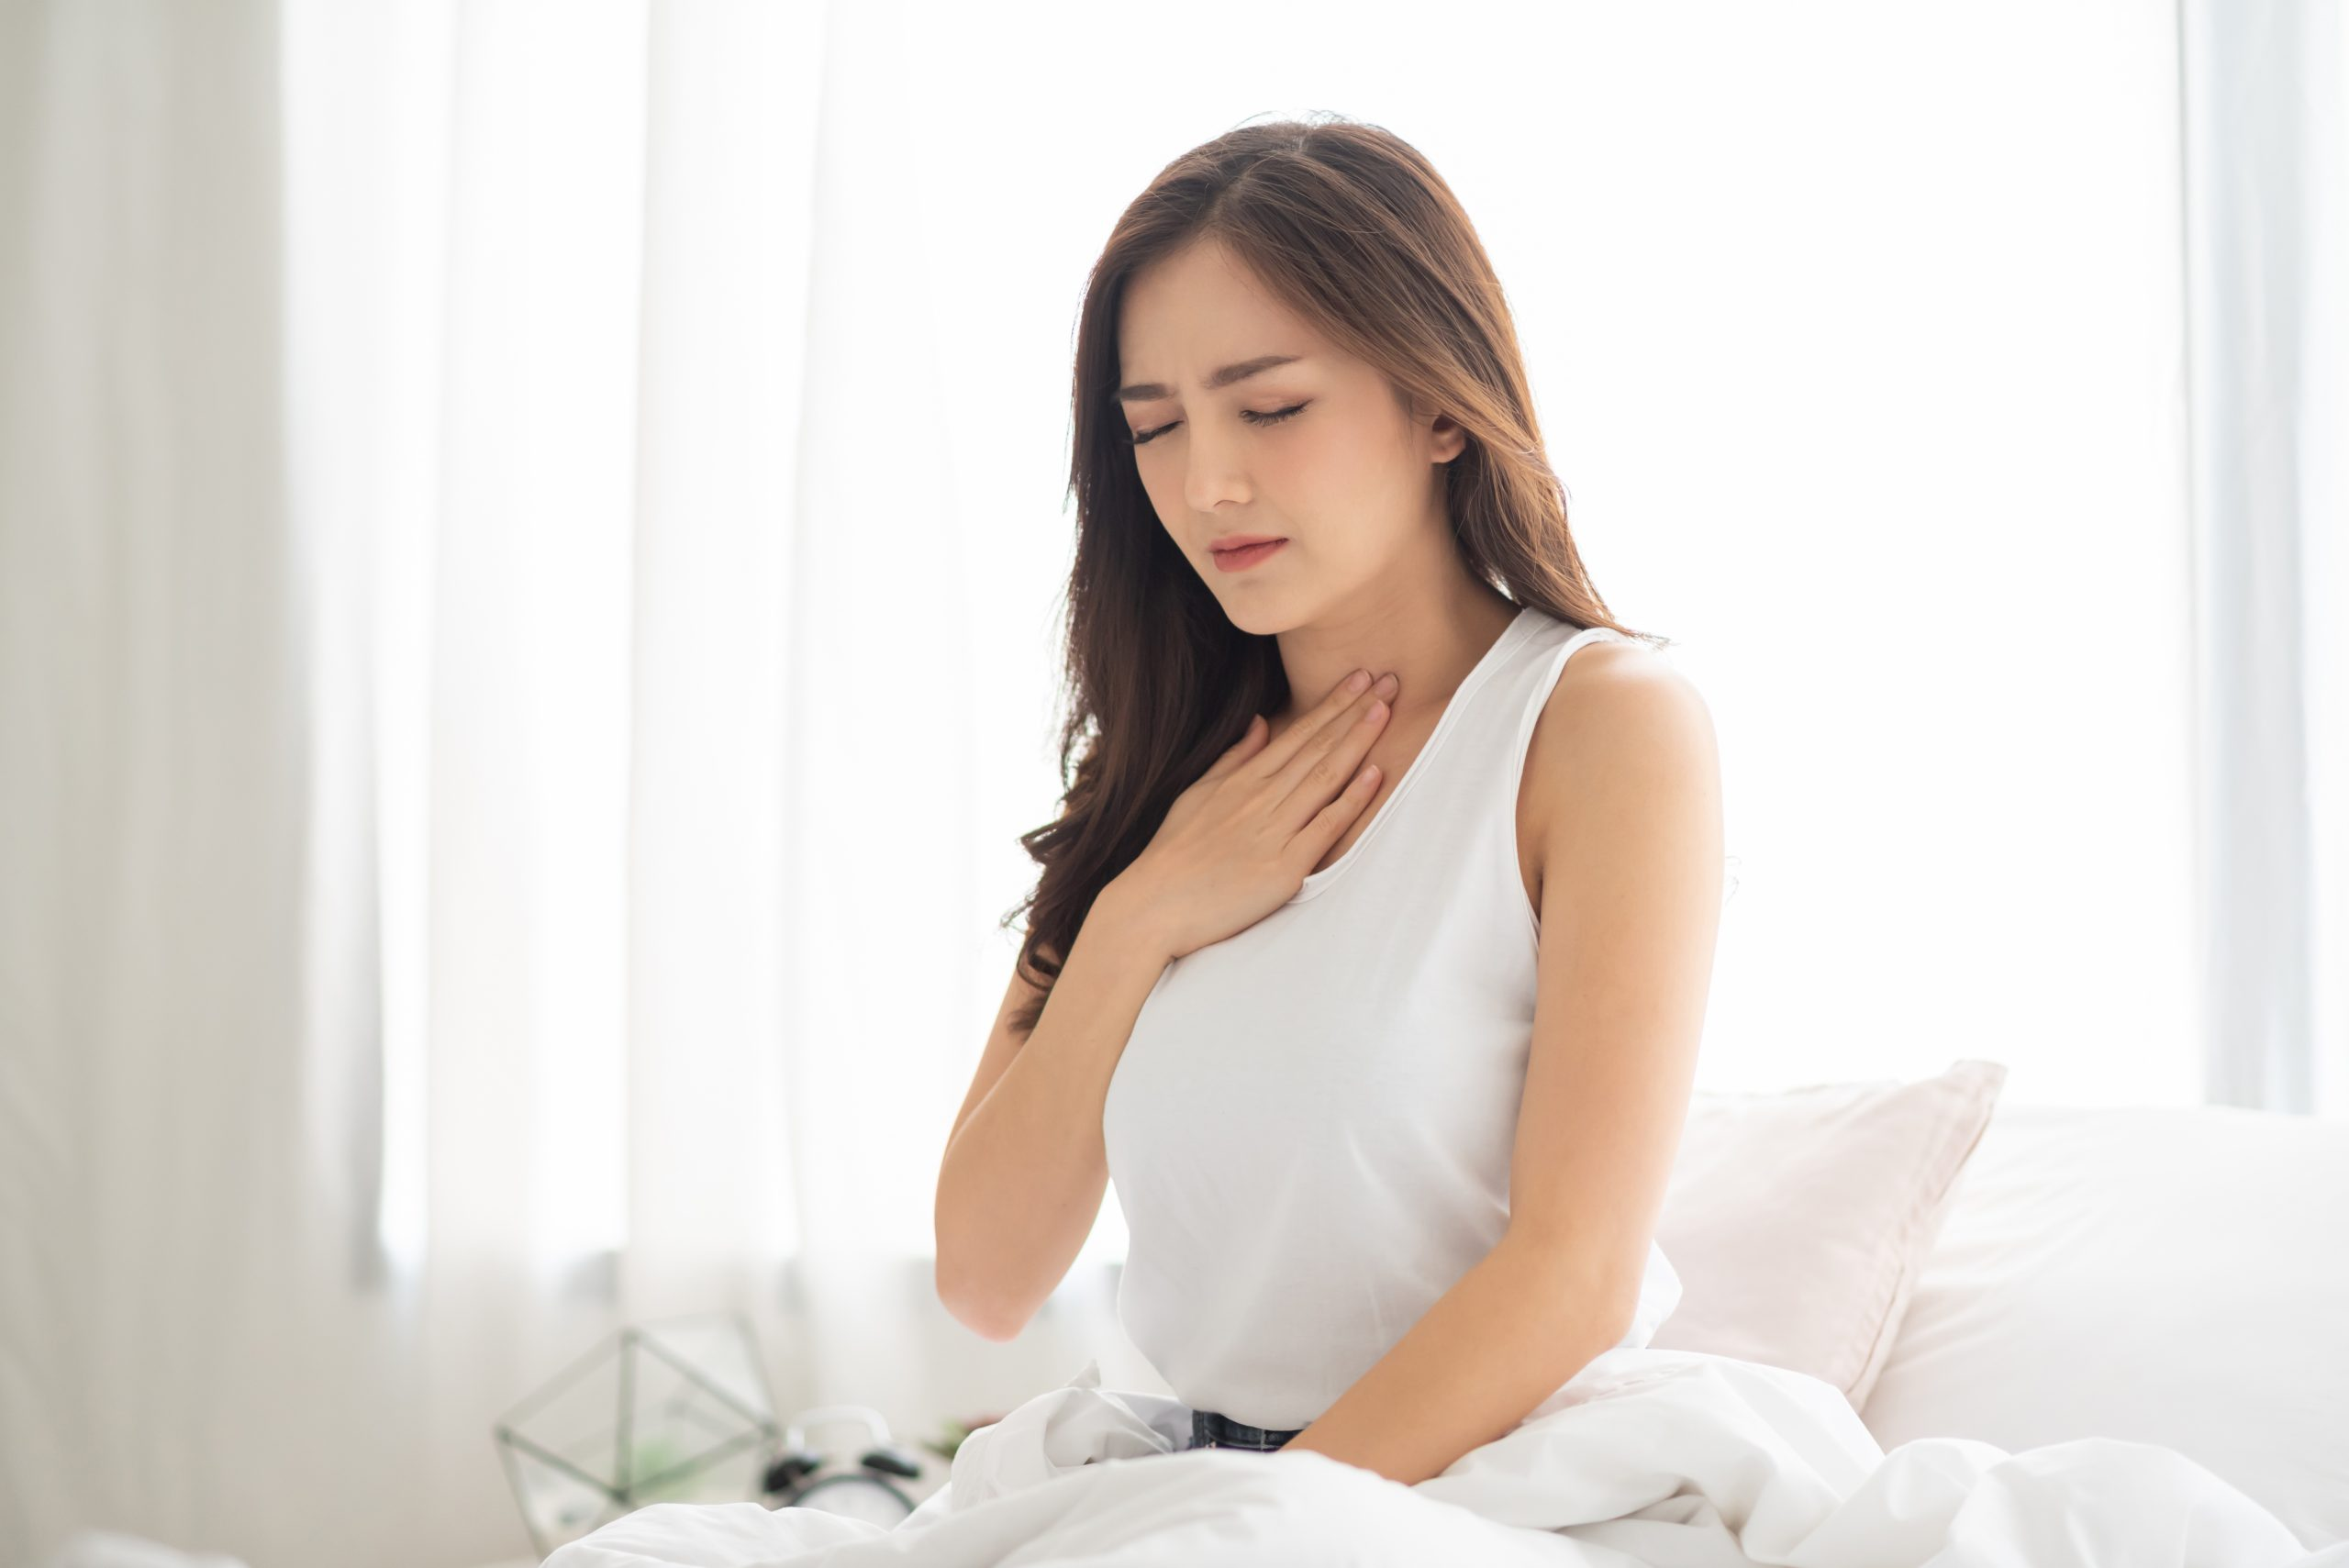 https://nutroo.me/wp-content/uploads/2020/12/asian-beautiful-woman-with-acid-reflux-on-her-bed-illness-disease-symptom-stockpack-istock-scaled.jpg